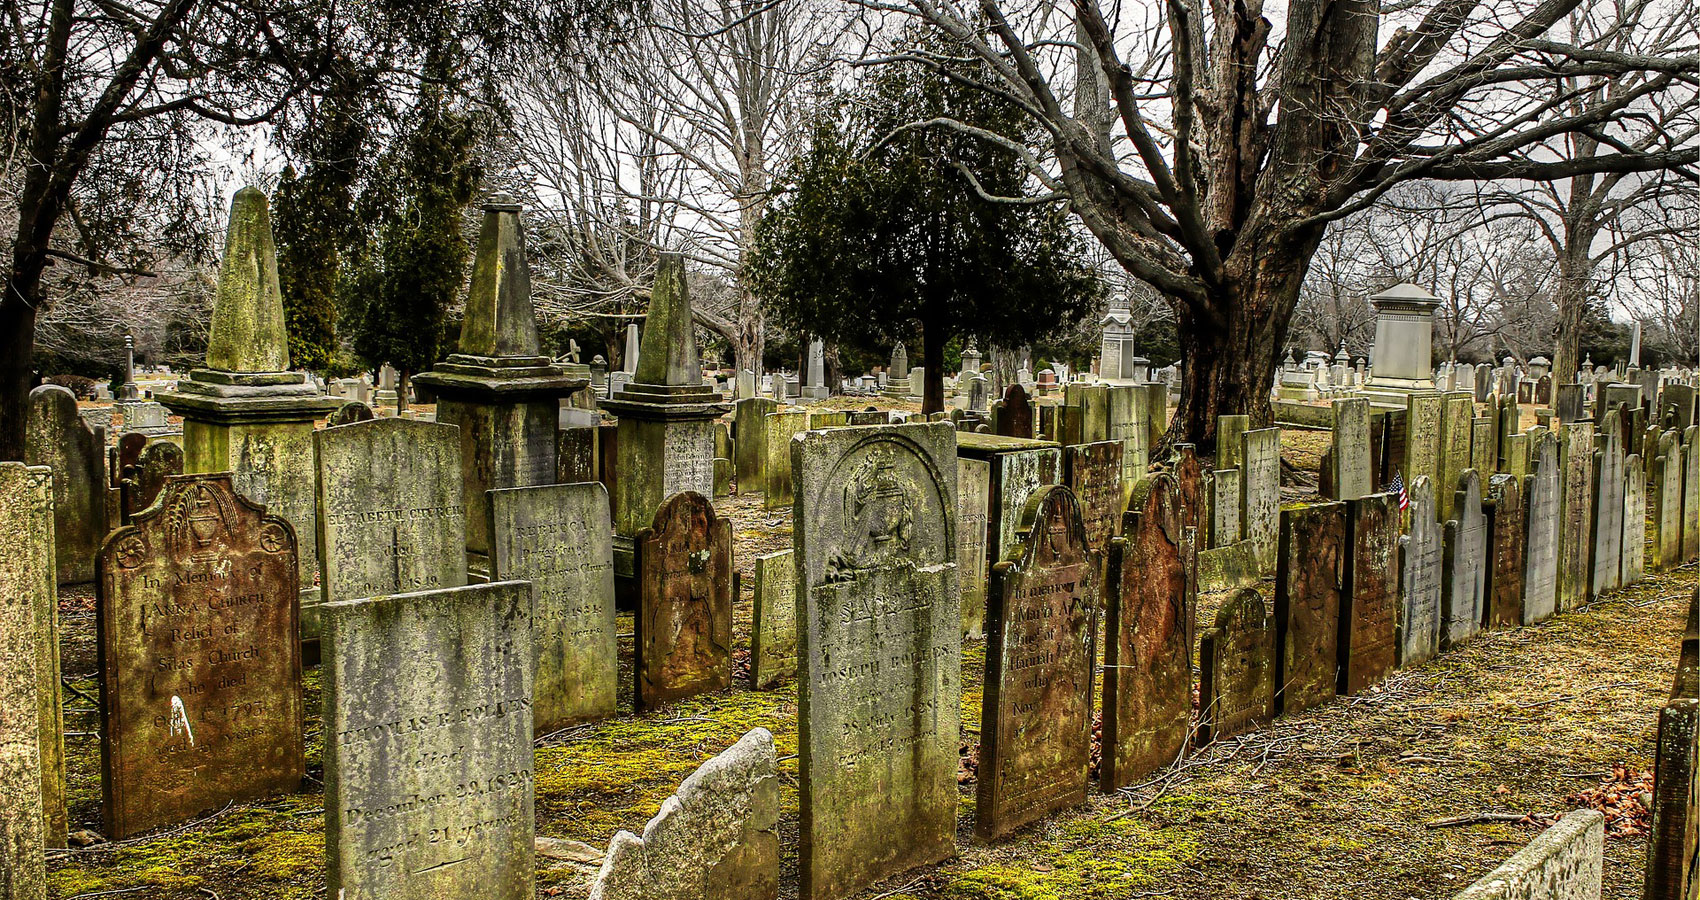 Lost In The Graveyard by Asad Mian at Spillwords.com